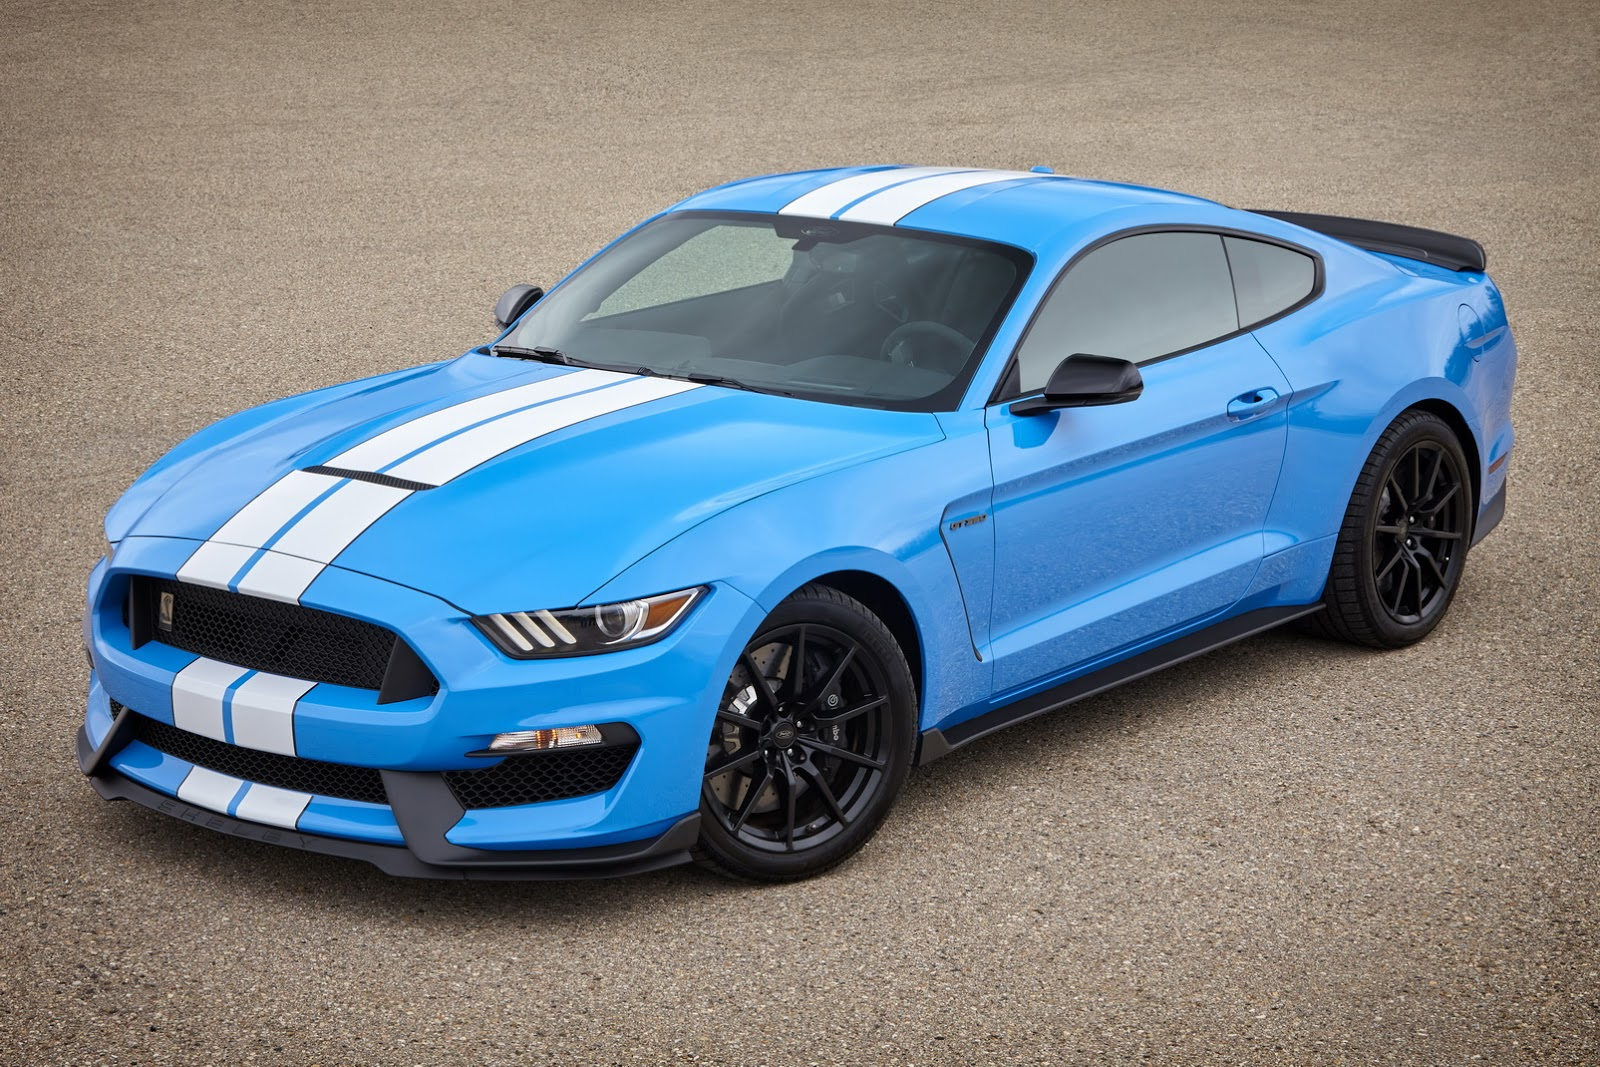 2017 mustang shelby gt350 first pics of new colors are. Black Bedroom Furniture Sets. Home Design Ideas